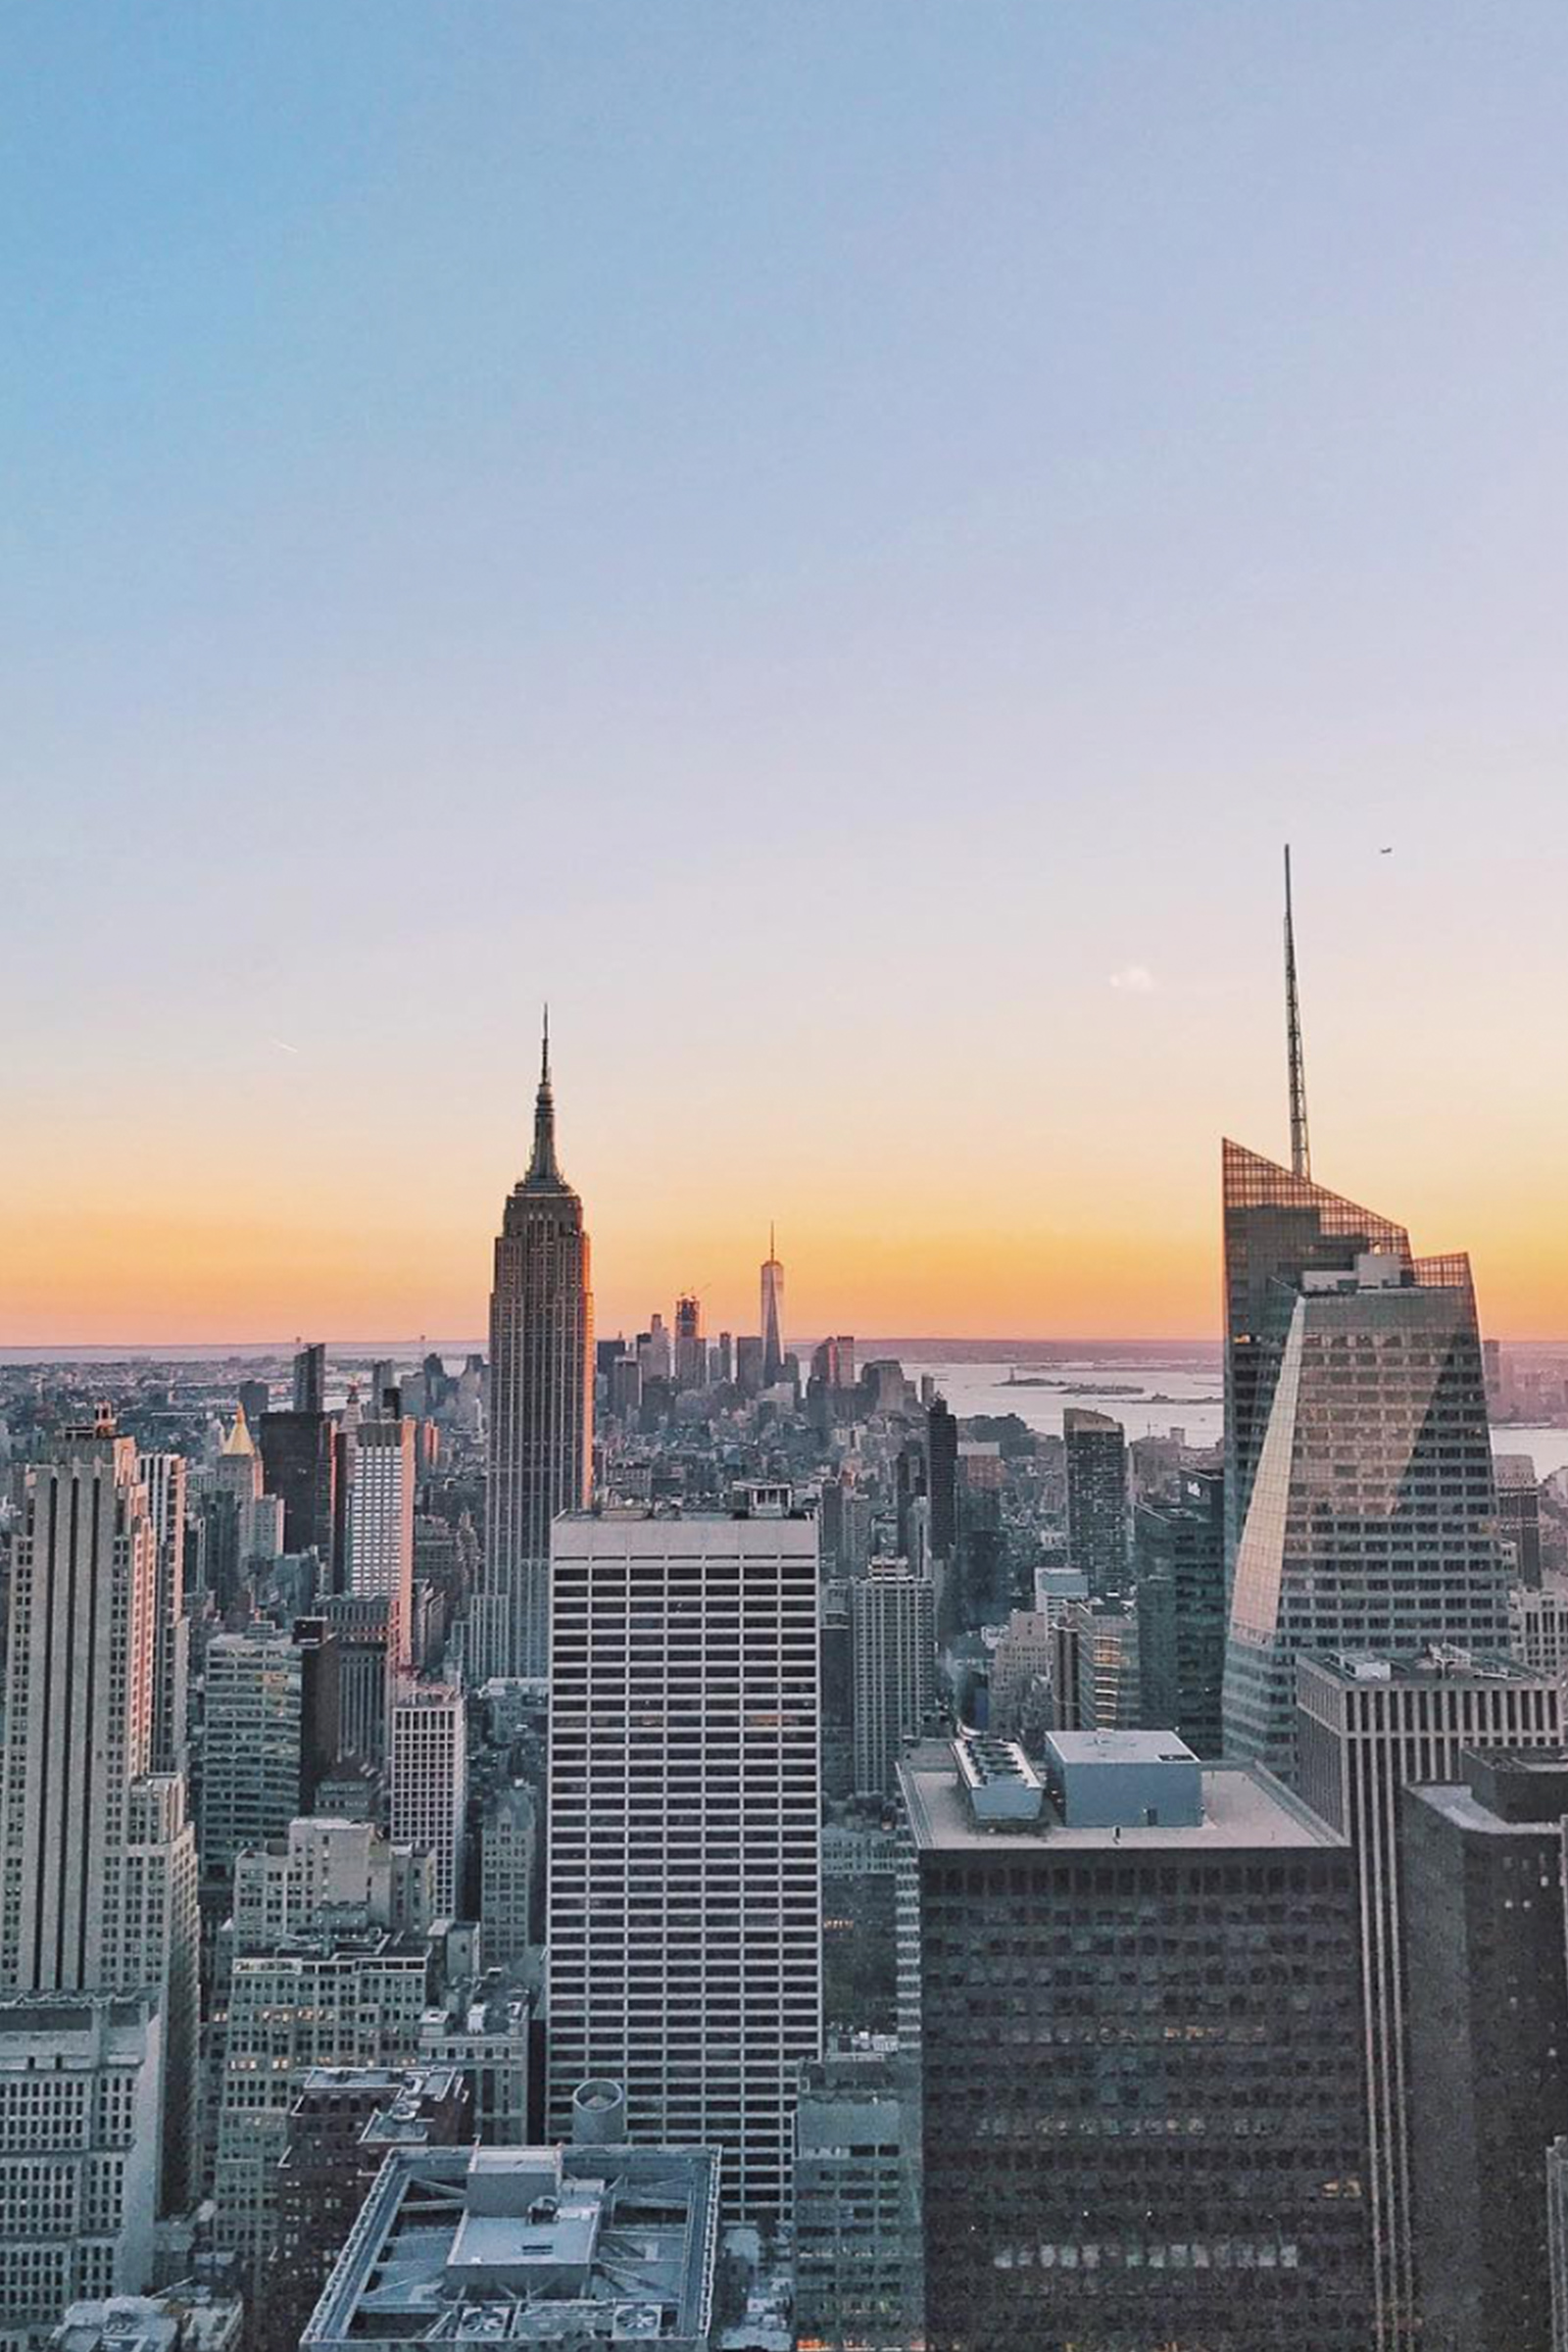 New York City Skyline / Empire State Building / Sunset / Travel Wanderlust Photography / Kelly Fiance Creative